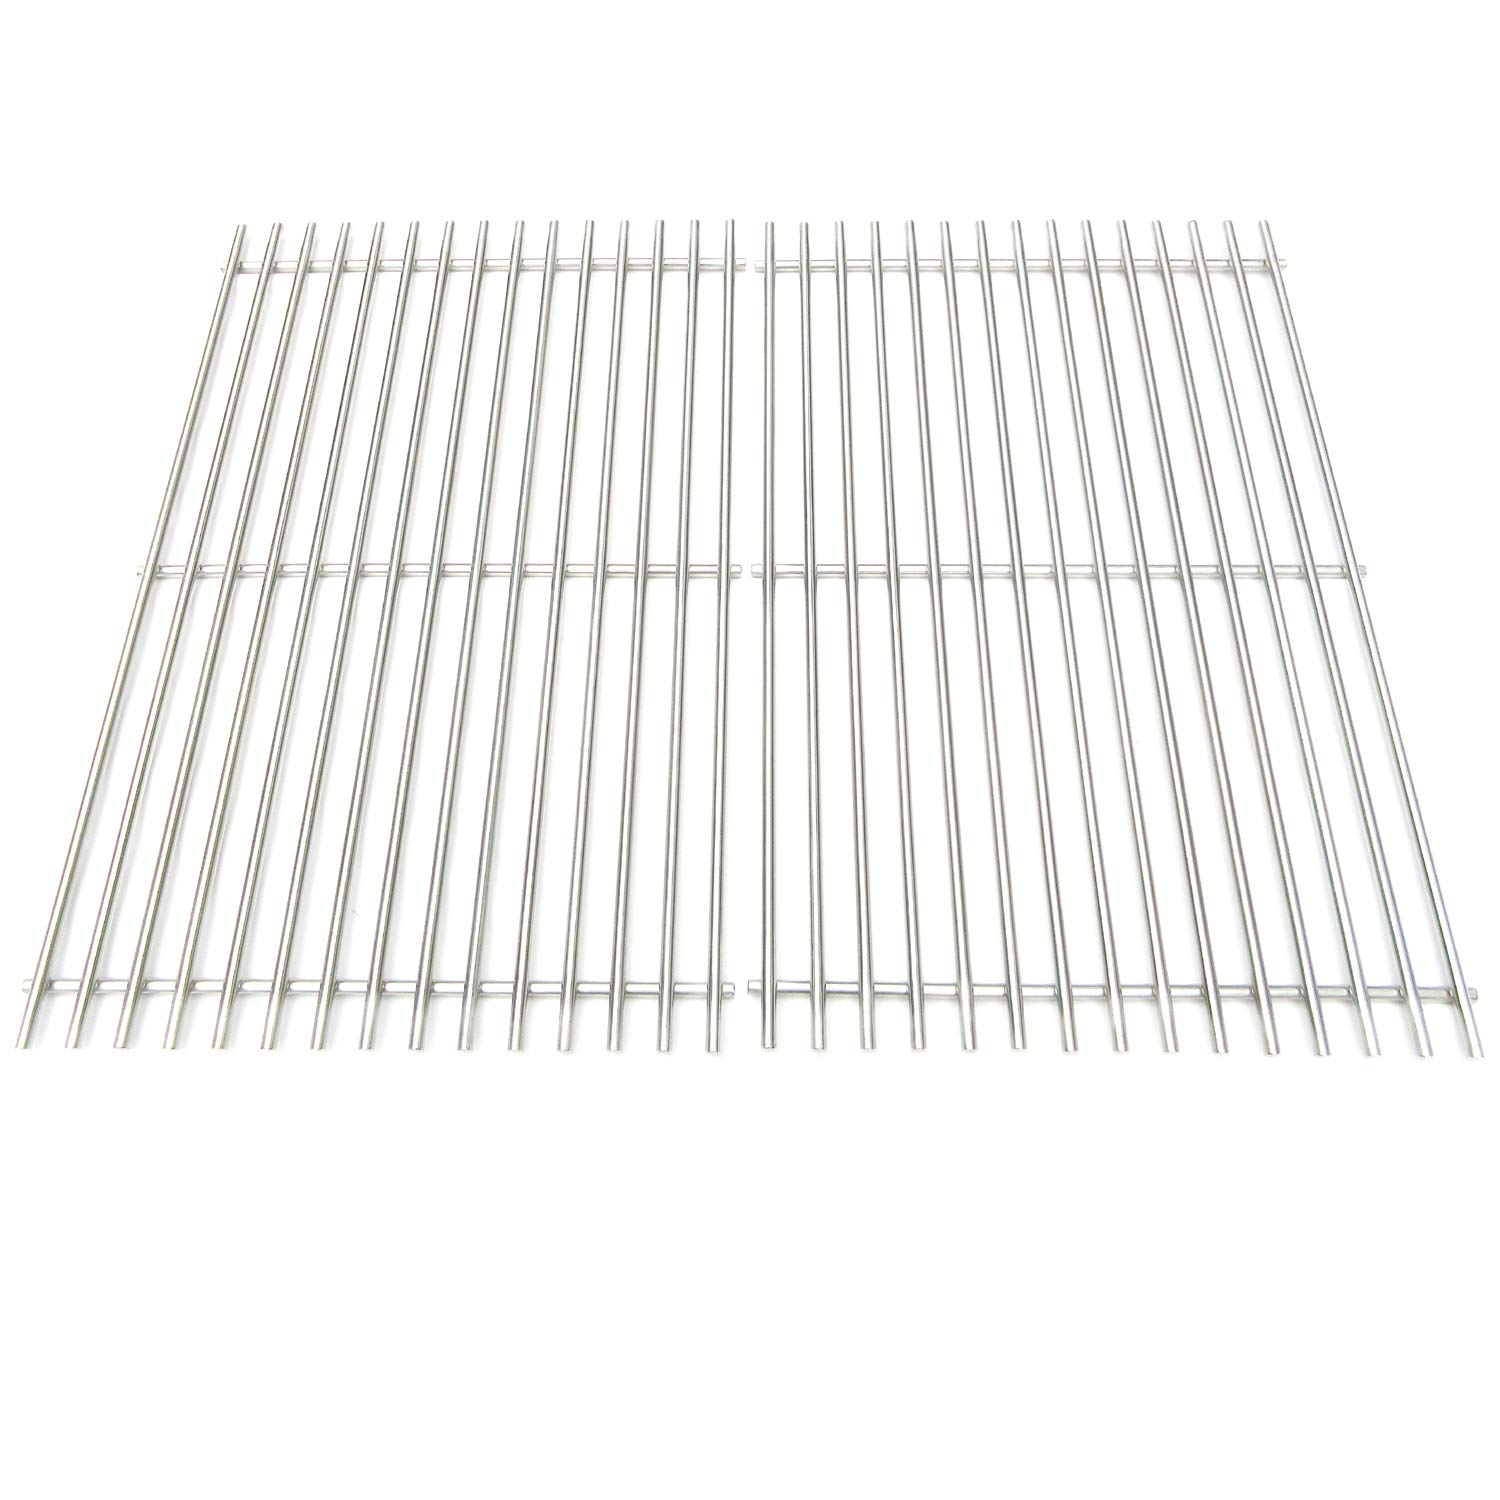 Direct store Parts DS114 Solid Stainless Steel Cooking grids Replacement for Weber Genesis E and S series gas grills, Lowes Model Grills , Weber Original Part 7528 (Aftermarket Parts) by Direct store